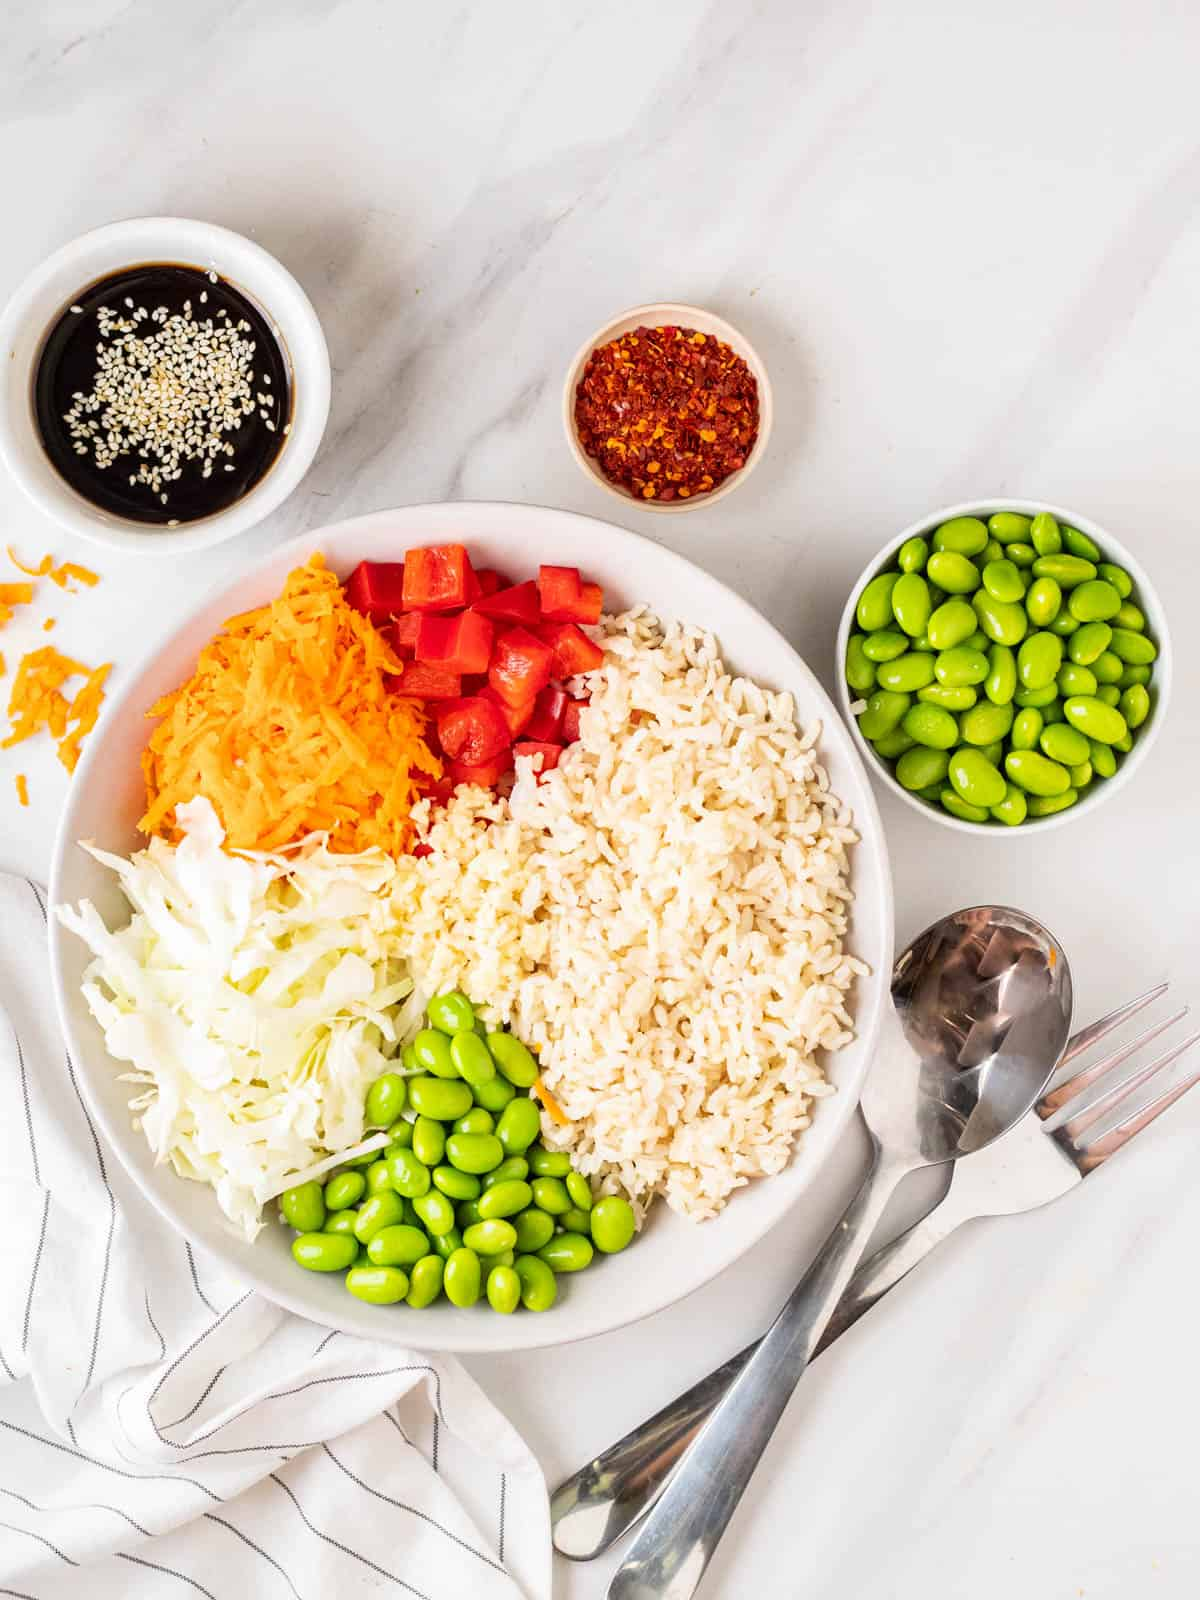 Vegan rice salad with components separated in a bowl.